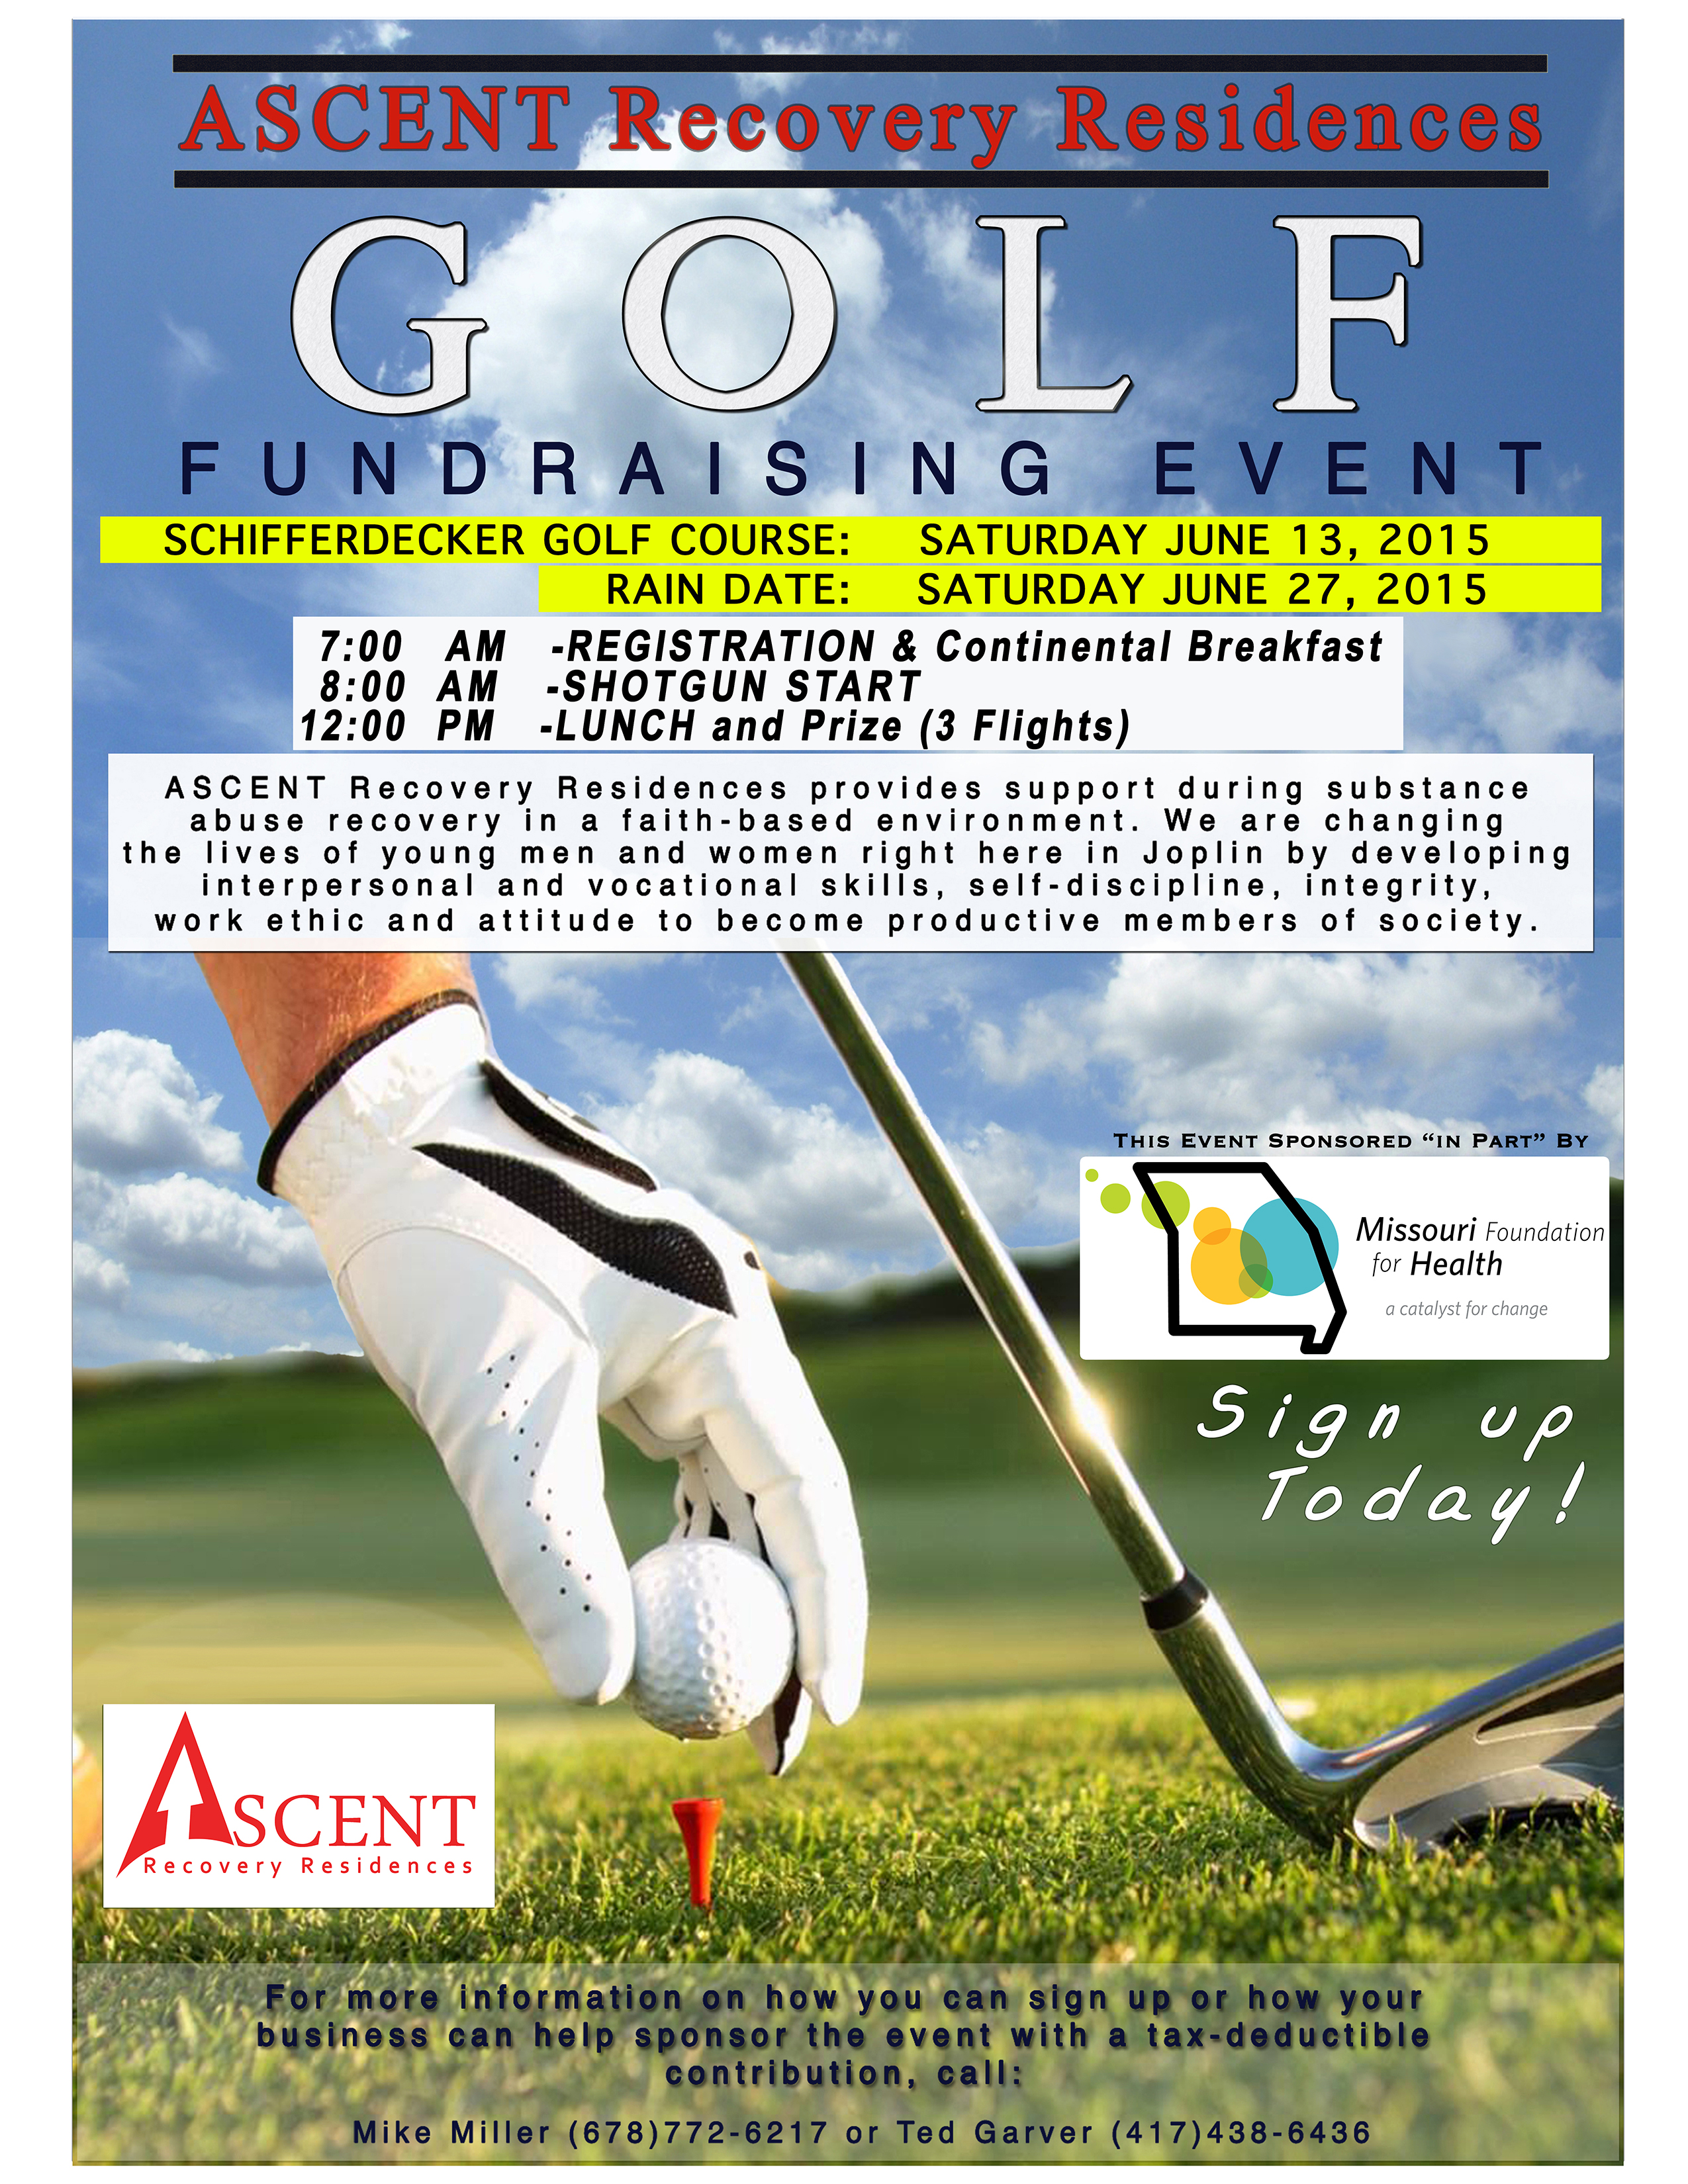 ascent golf outing 2015 registration form ascent recovery